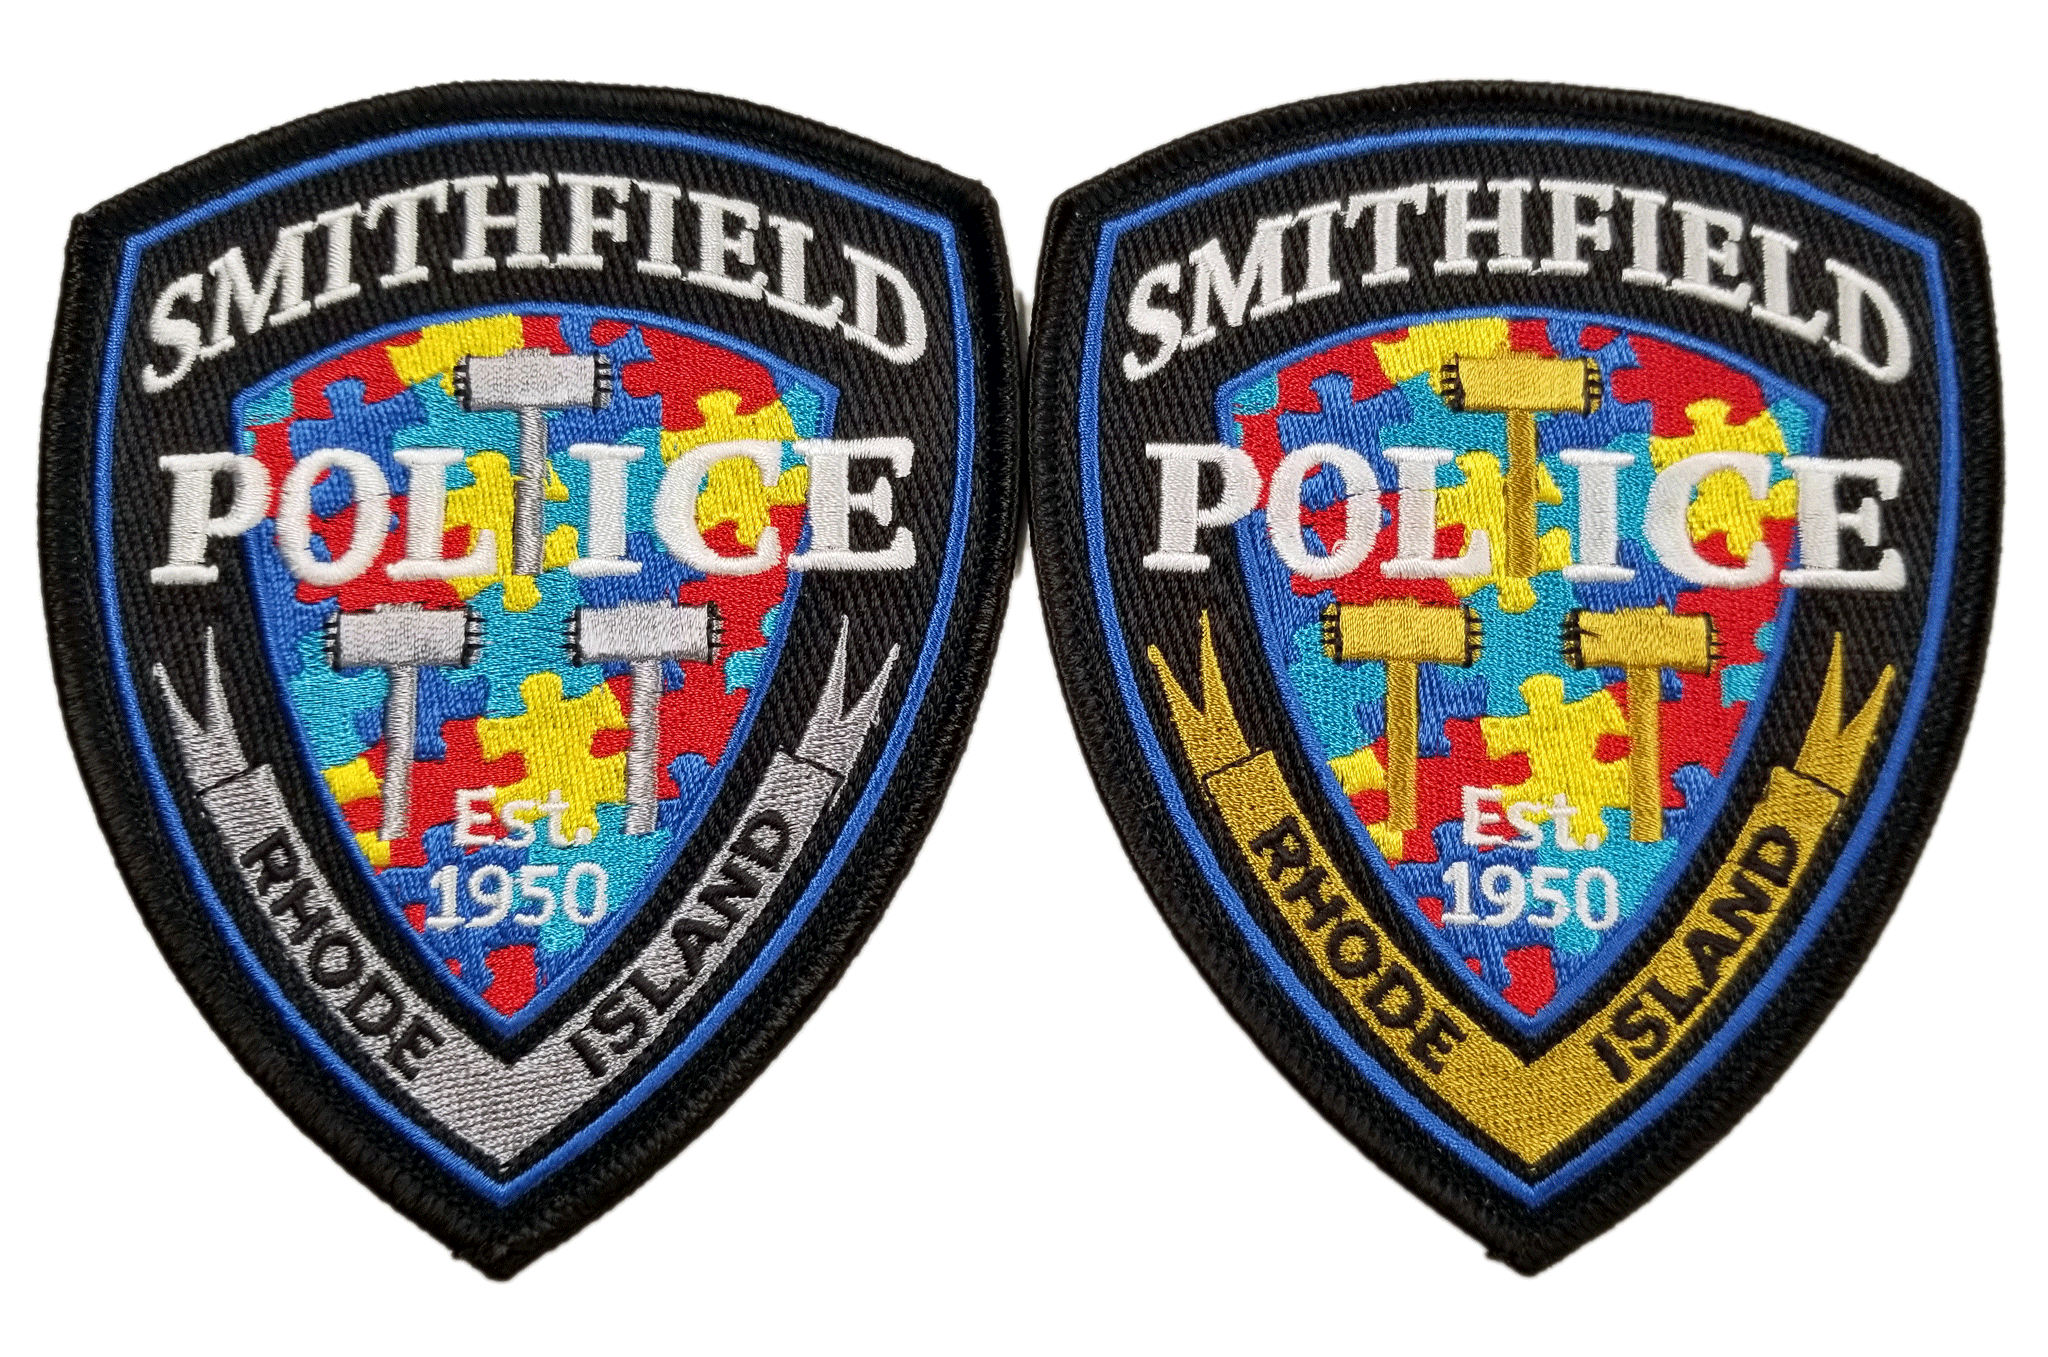 Smithfield Police Autism Awareness patches